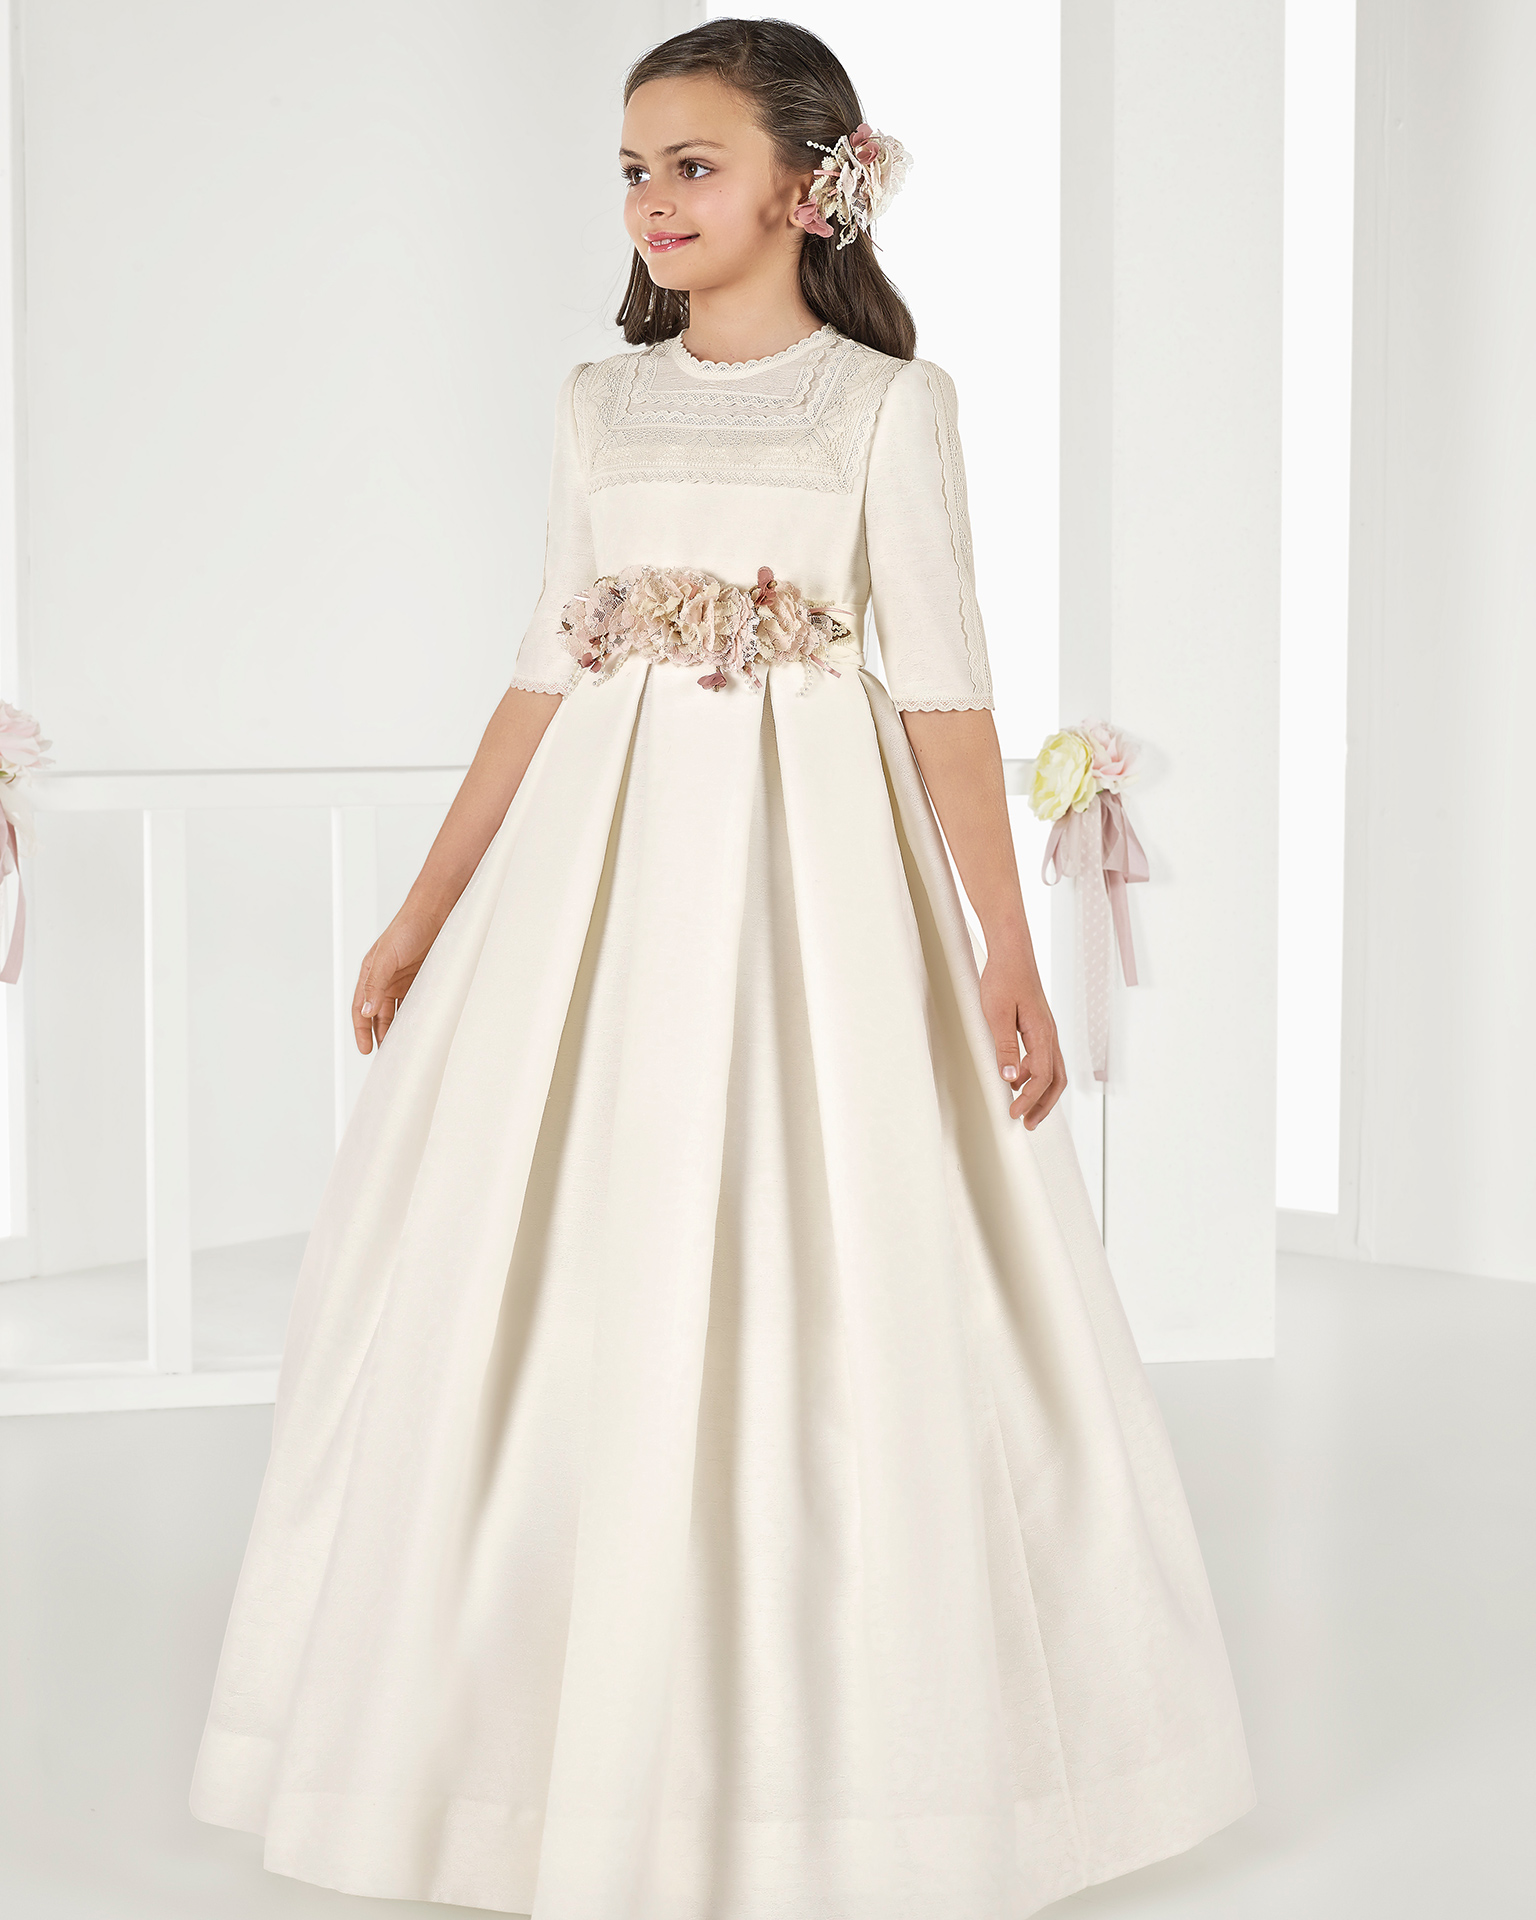 Princess-style brocade First Communion dress with empire waist, in ivory. 2018 AIRE COMUNION Collection.